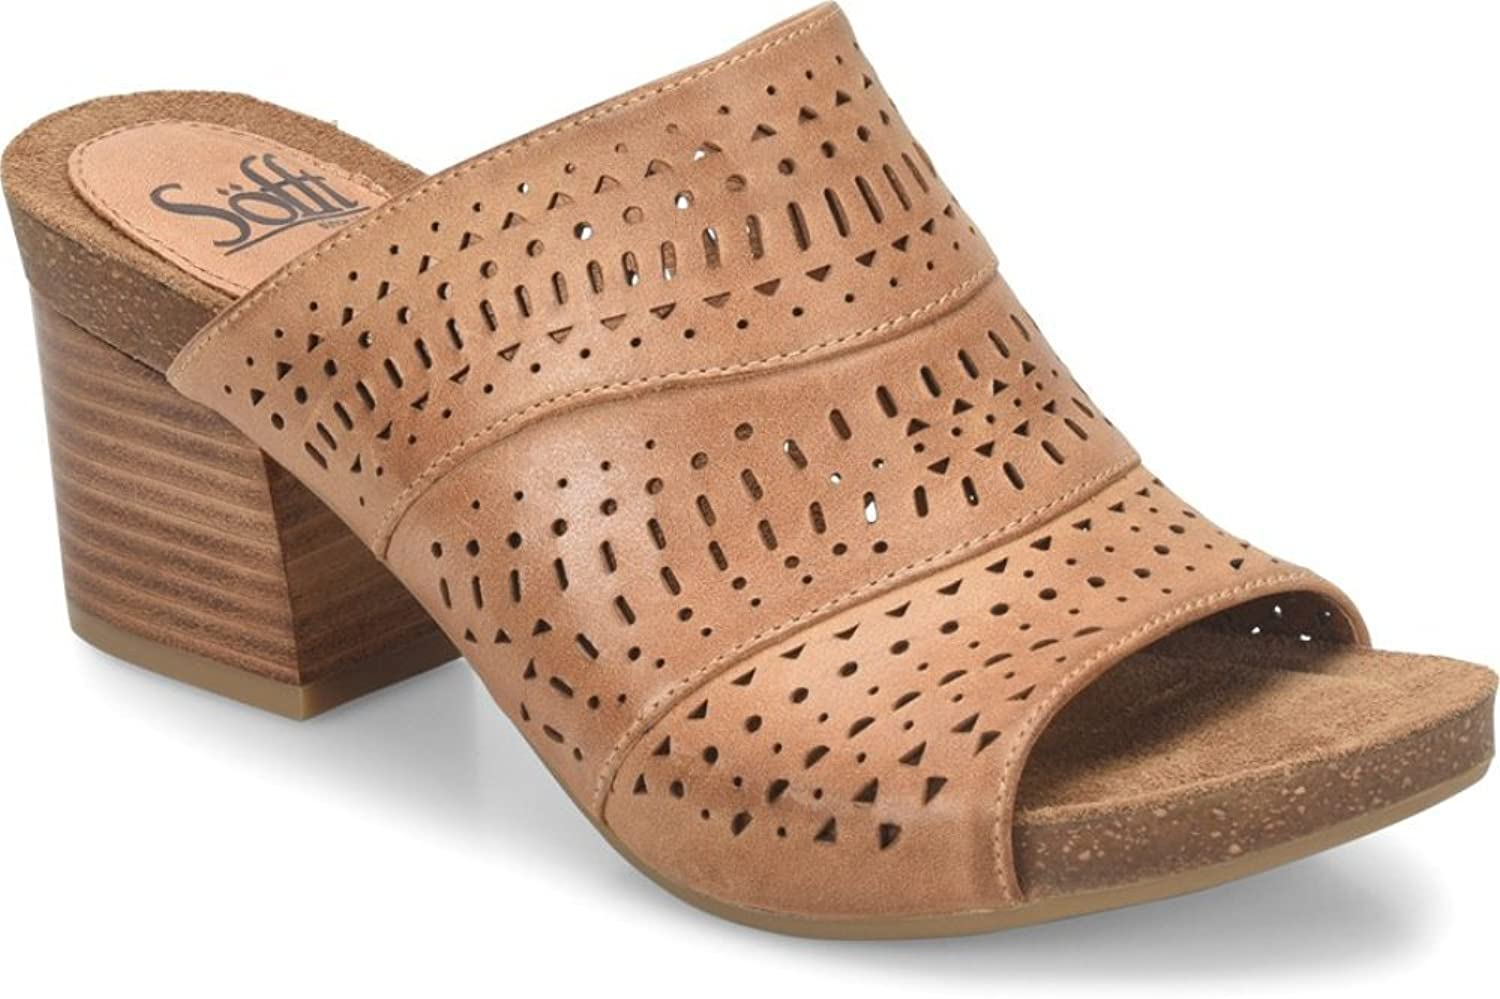 Sofft Womens Magnolia Open Toe Casual Slide Sandals, New Caramel, Size 6.5